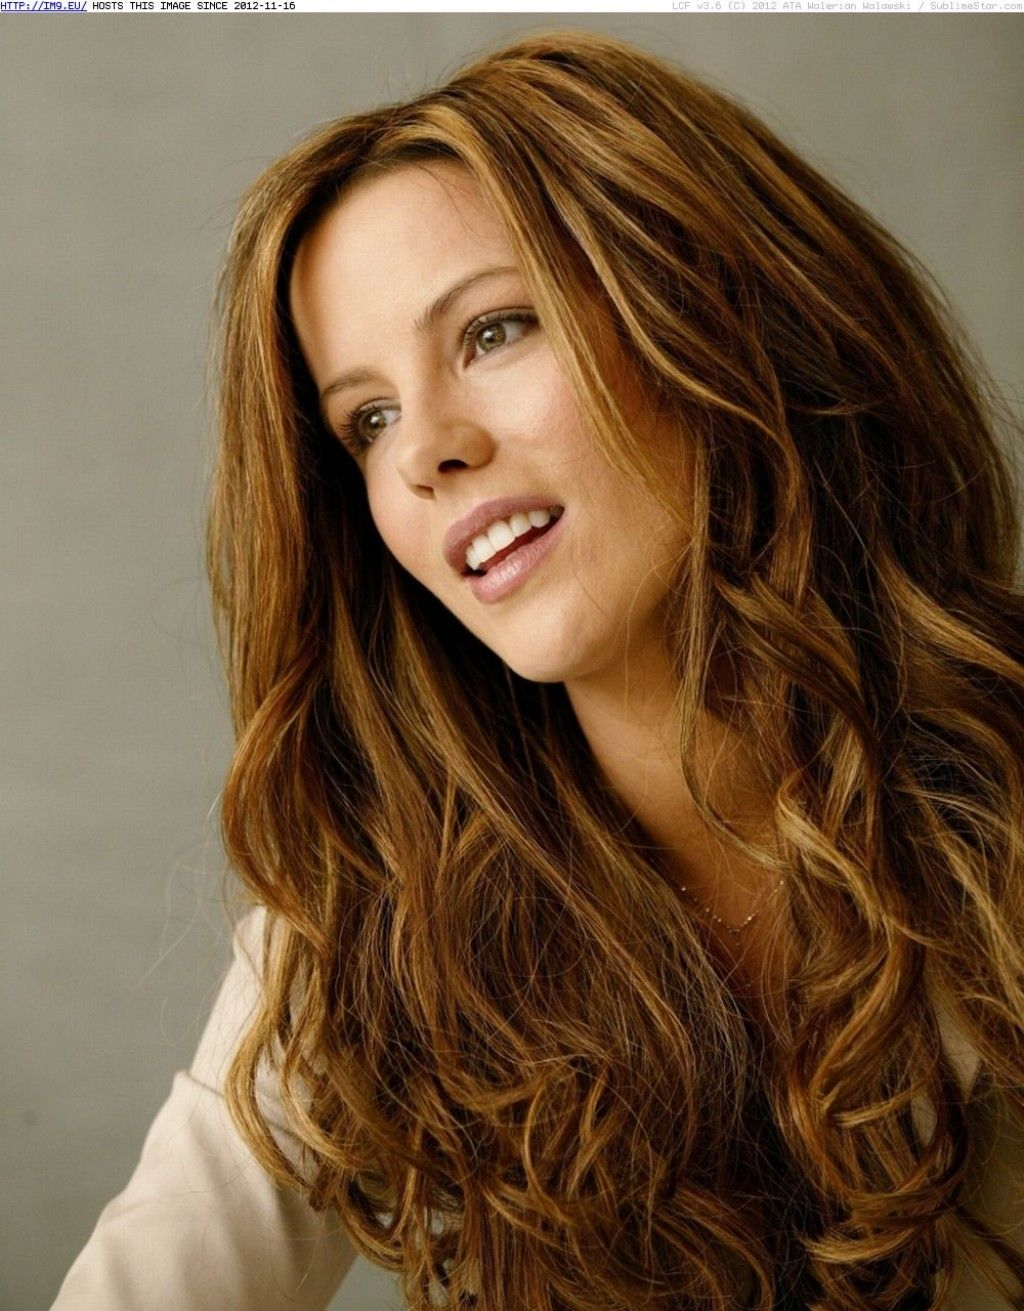 Dark Brown Hair With Blonde Highlights Hair And Beauty Pinterest